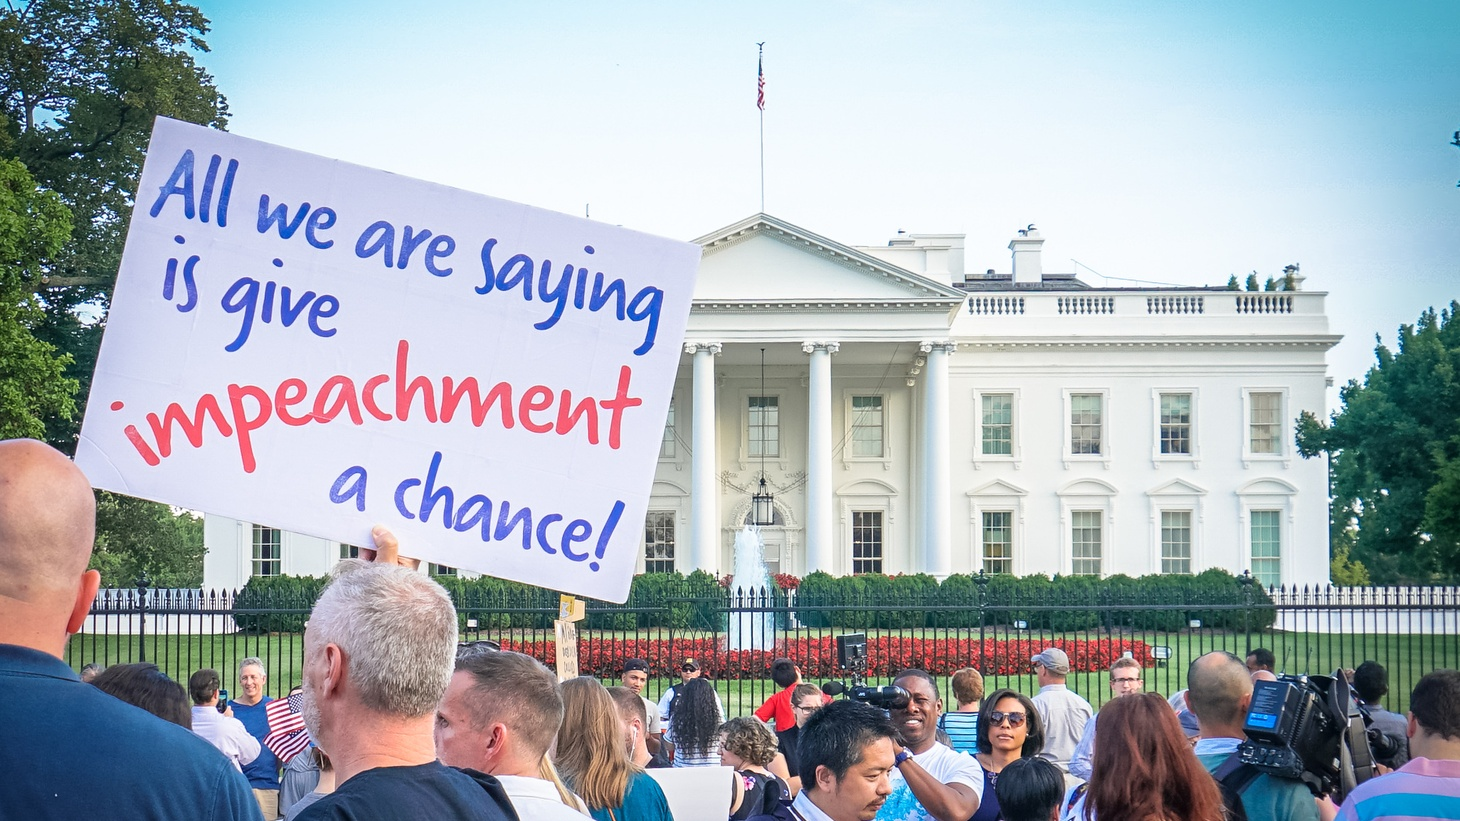 A protest outside the White House. Credit: Ted Eytan/CC BY-SA 2.0.